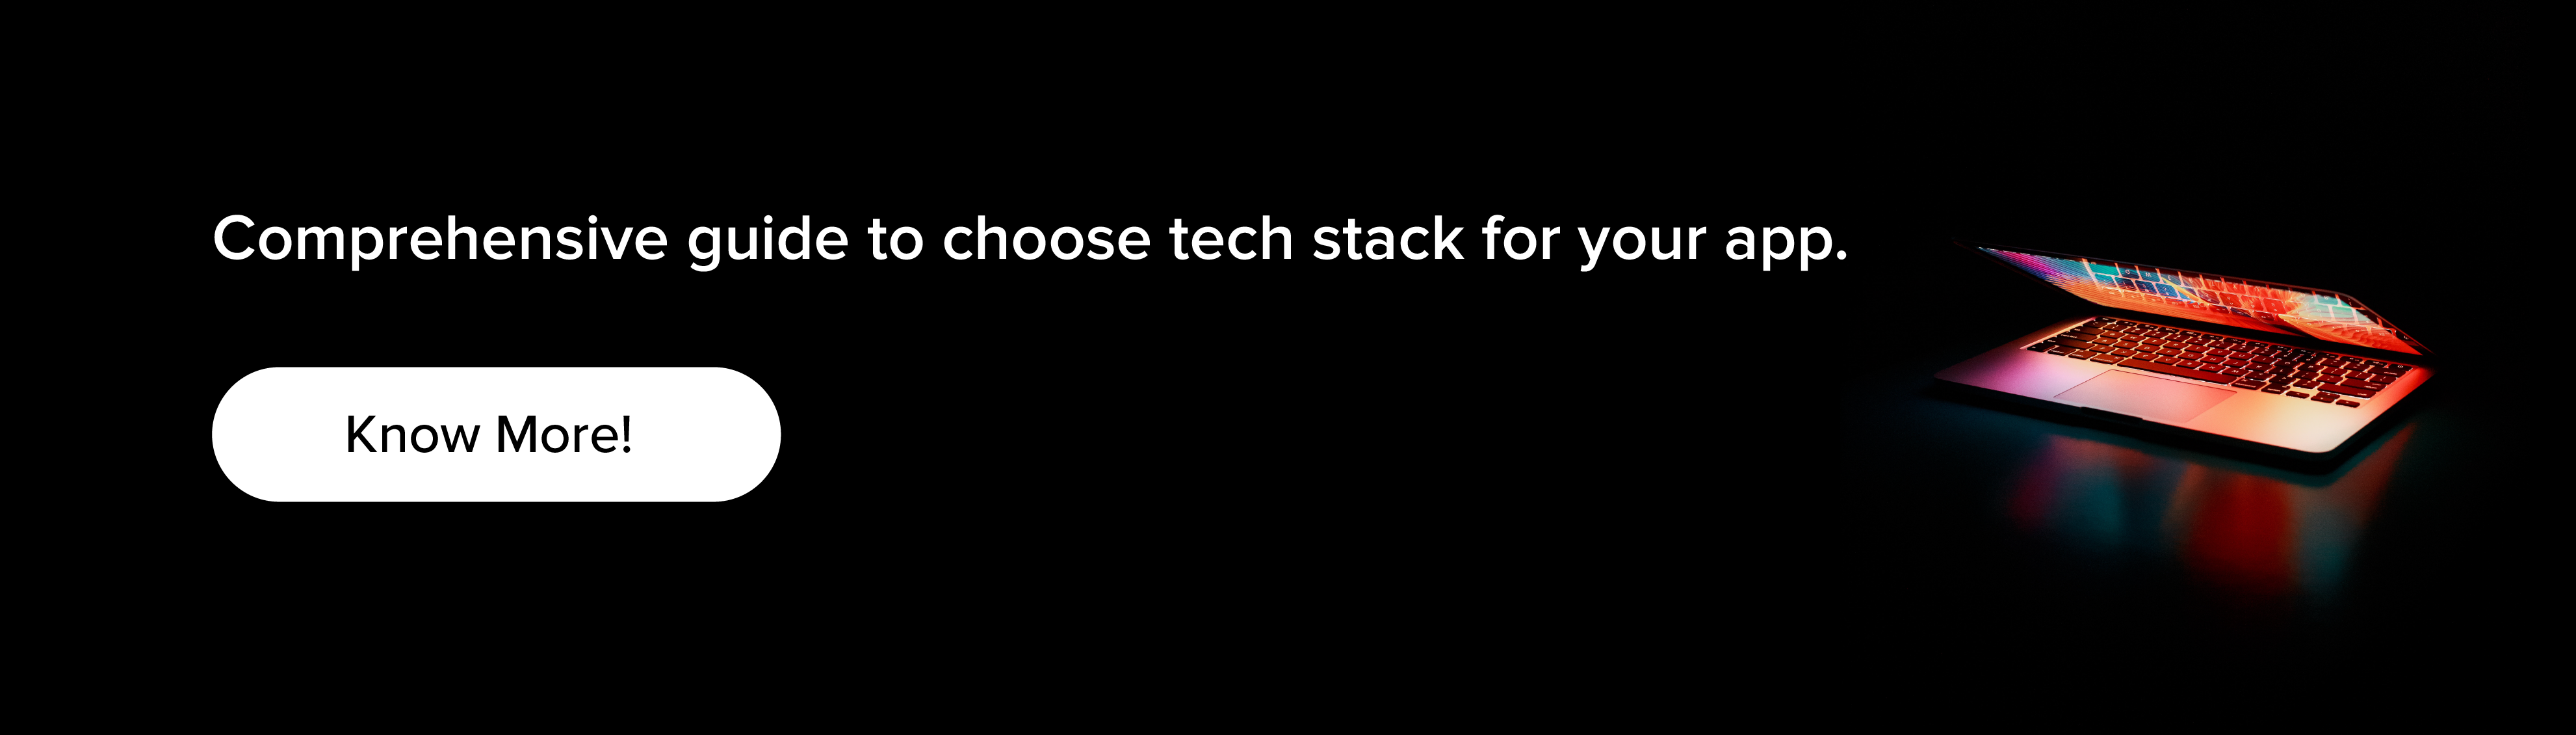 Comprehensive guide to choose tech stack for your app.